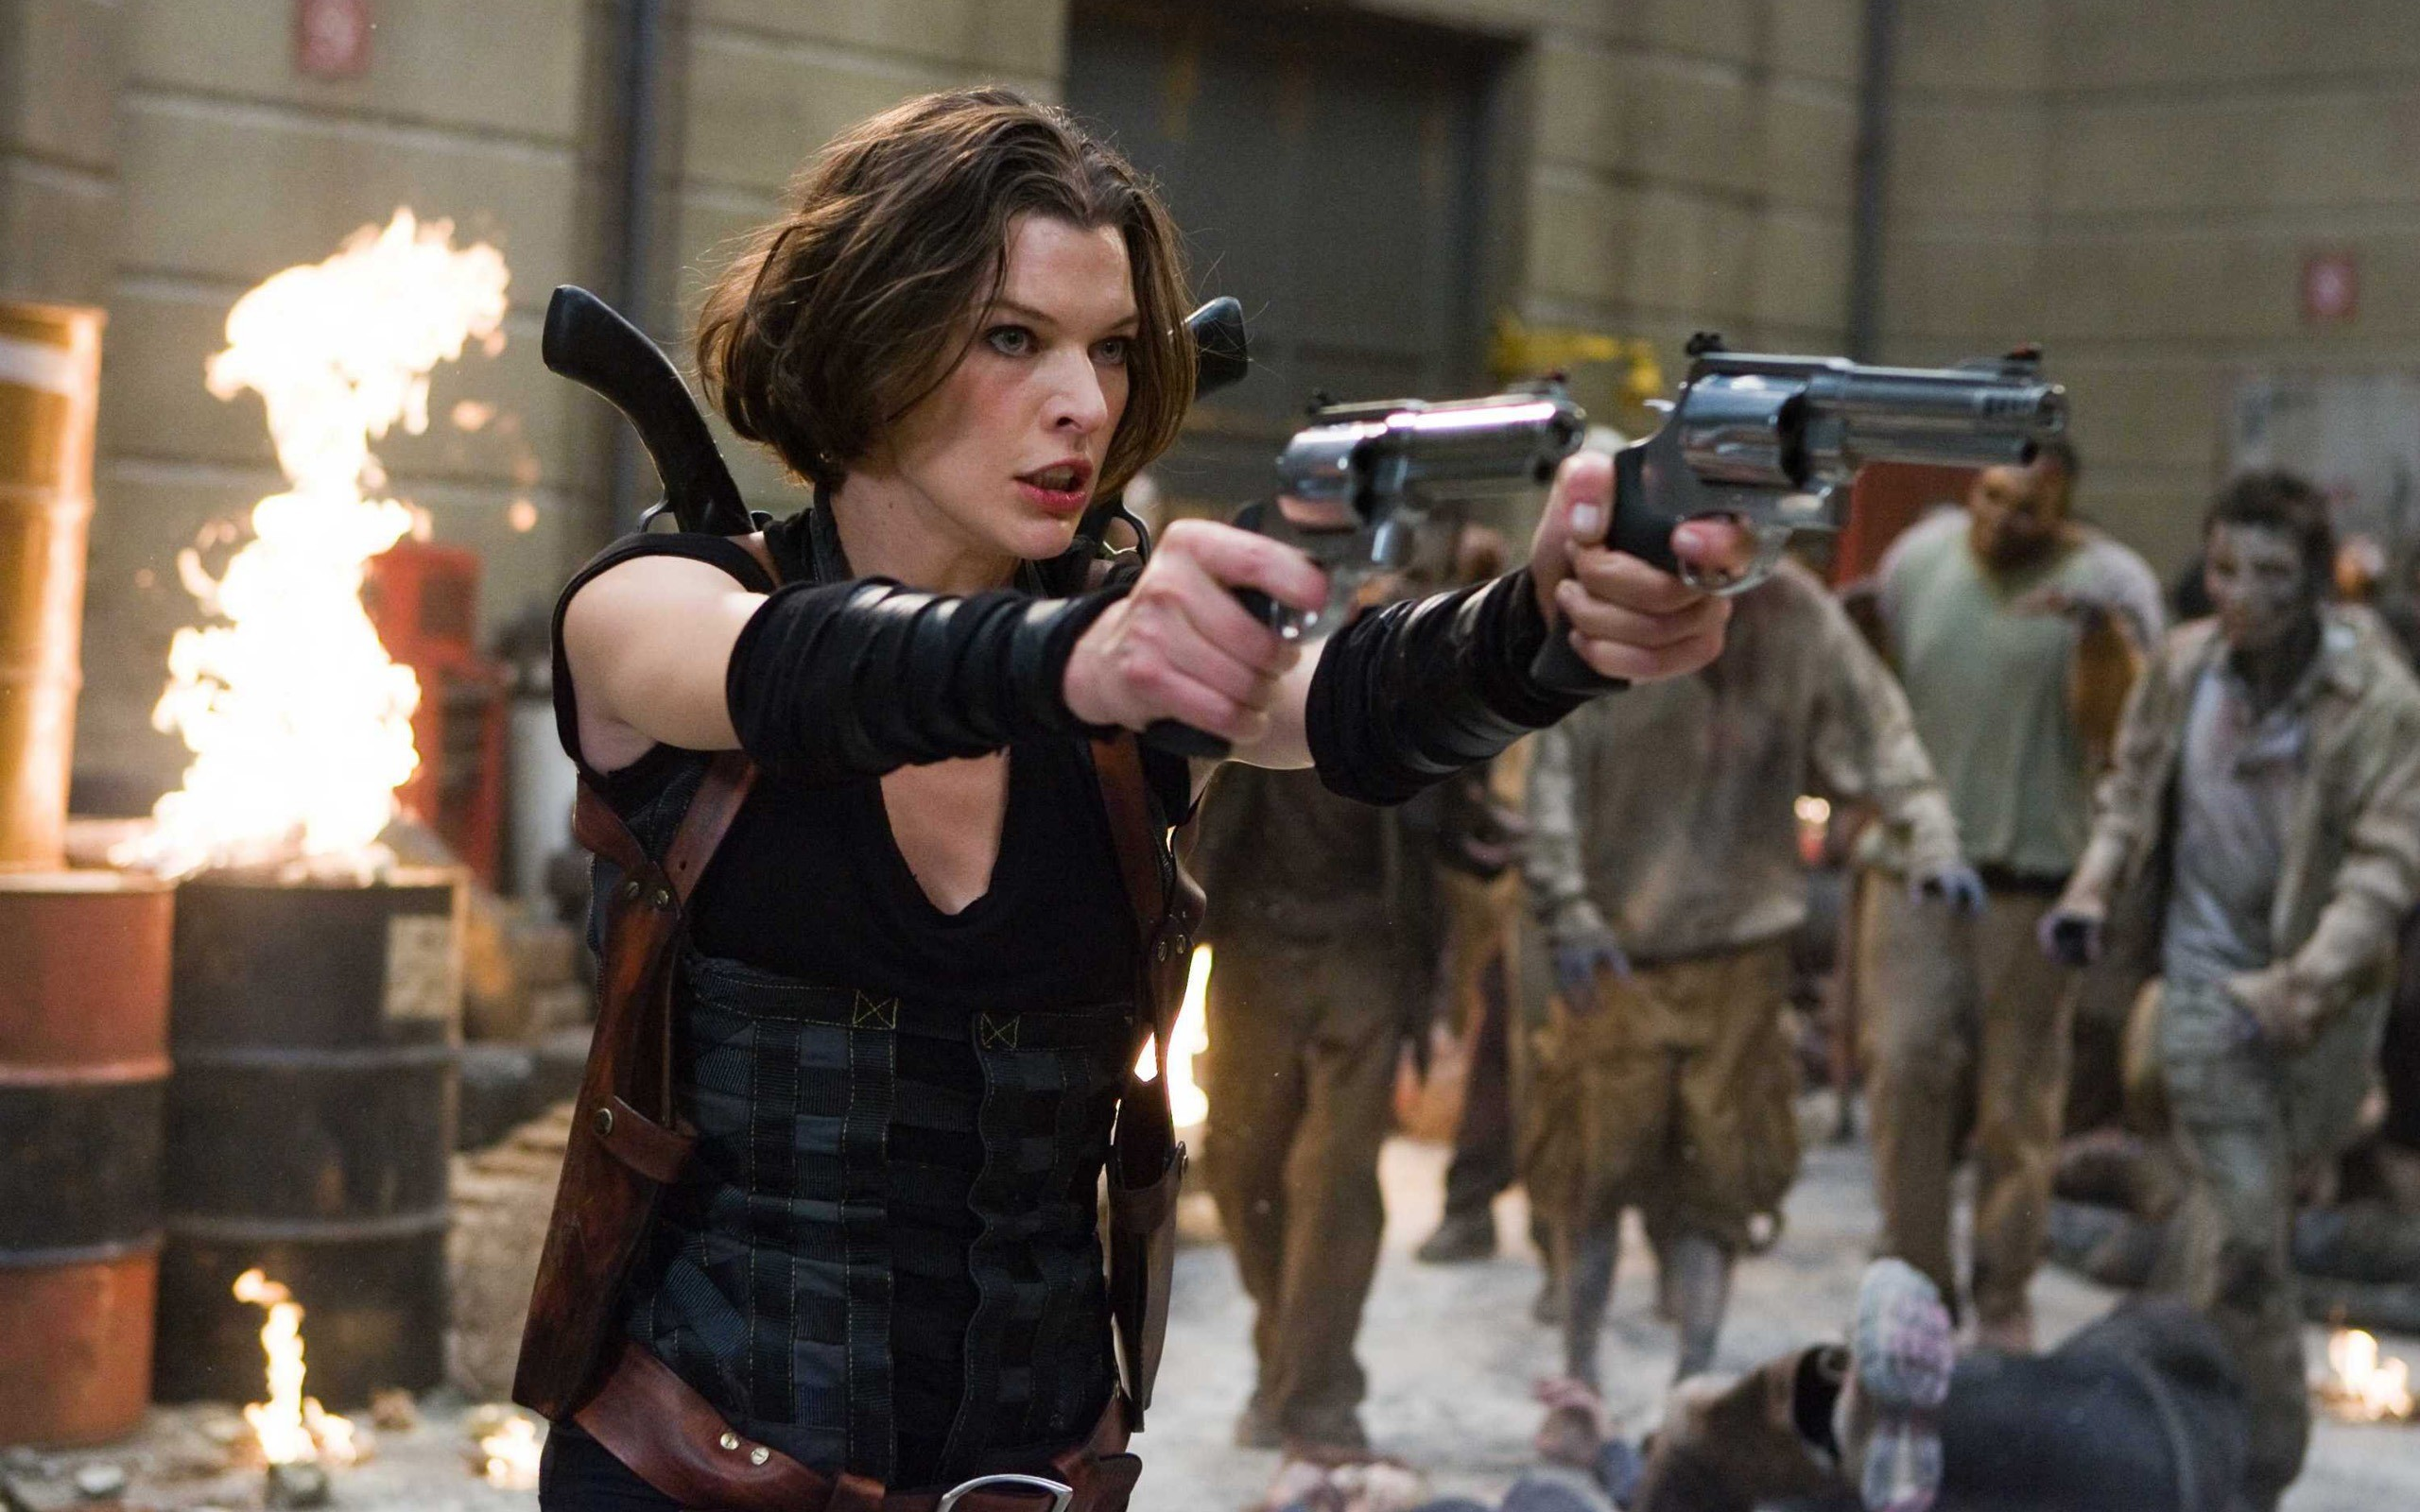 resident evil movies - HD1600×1000